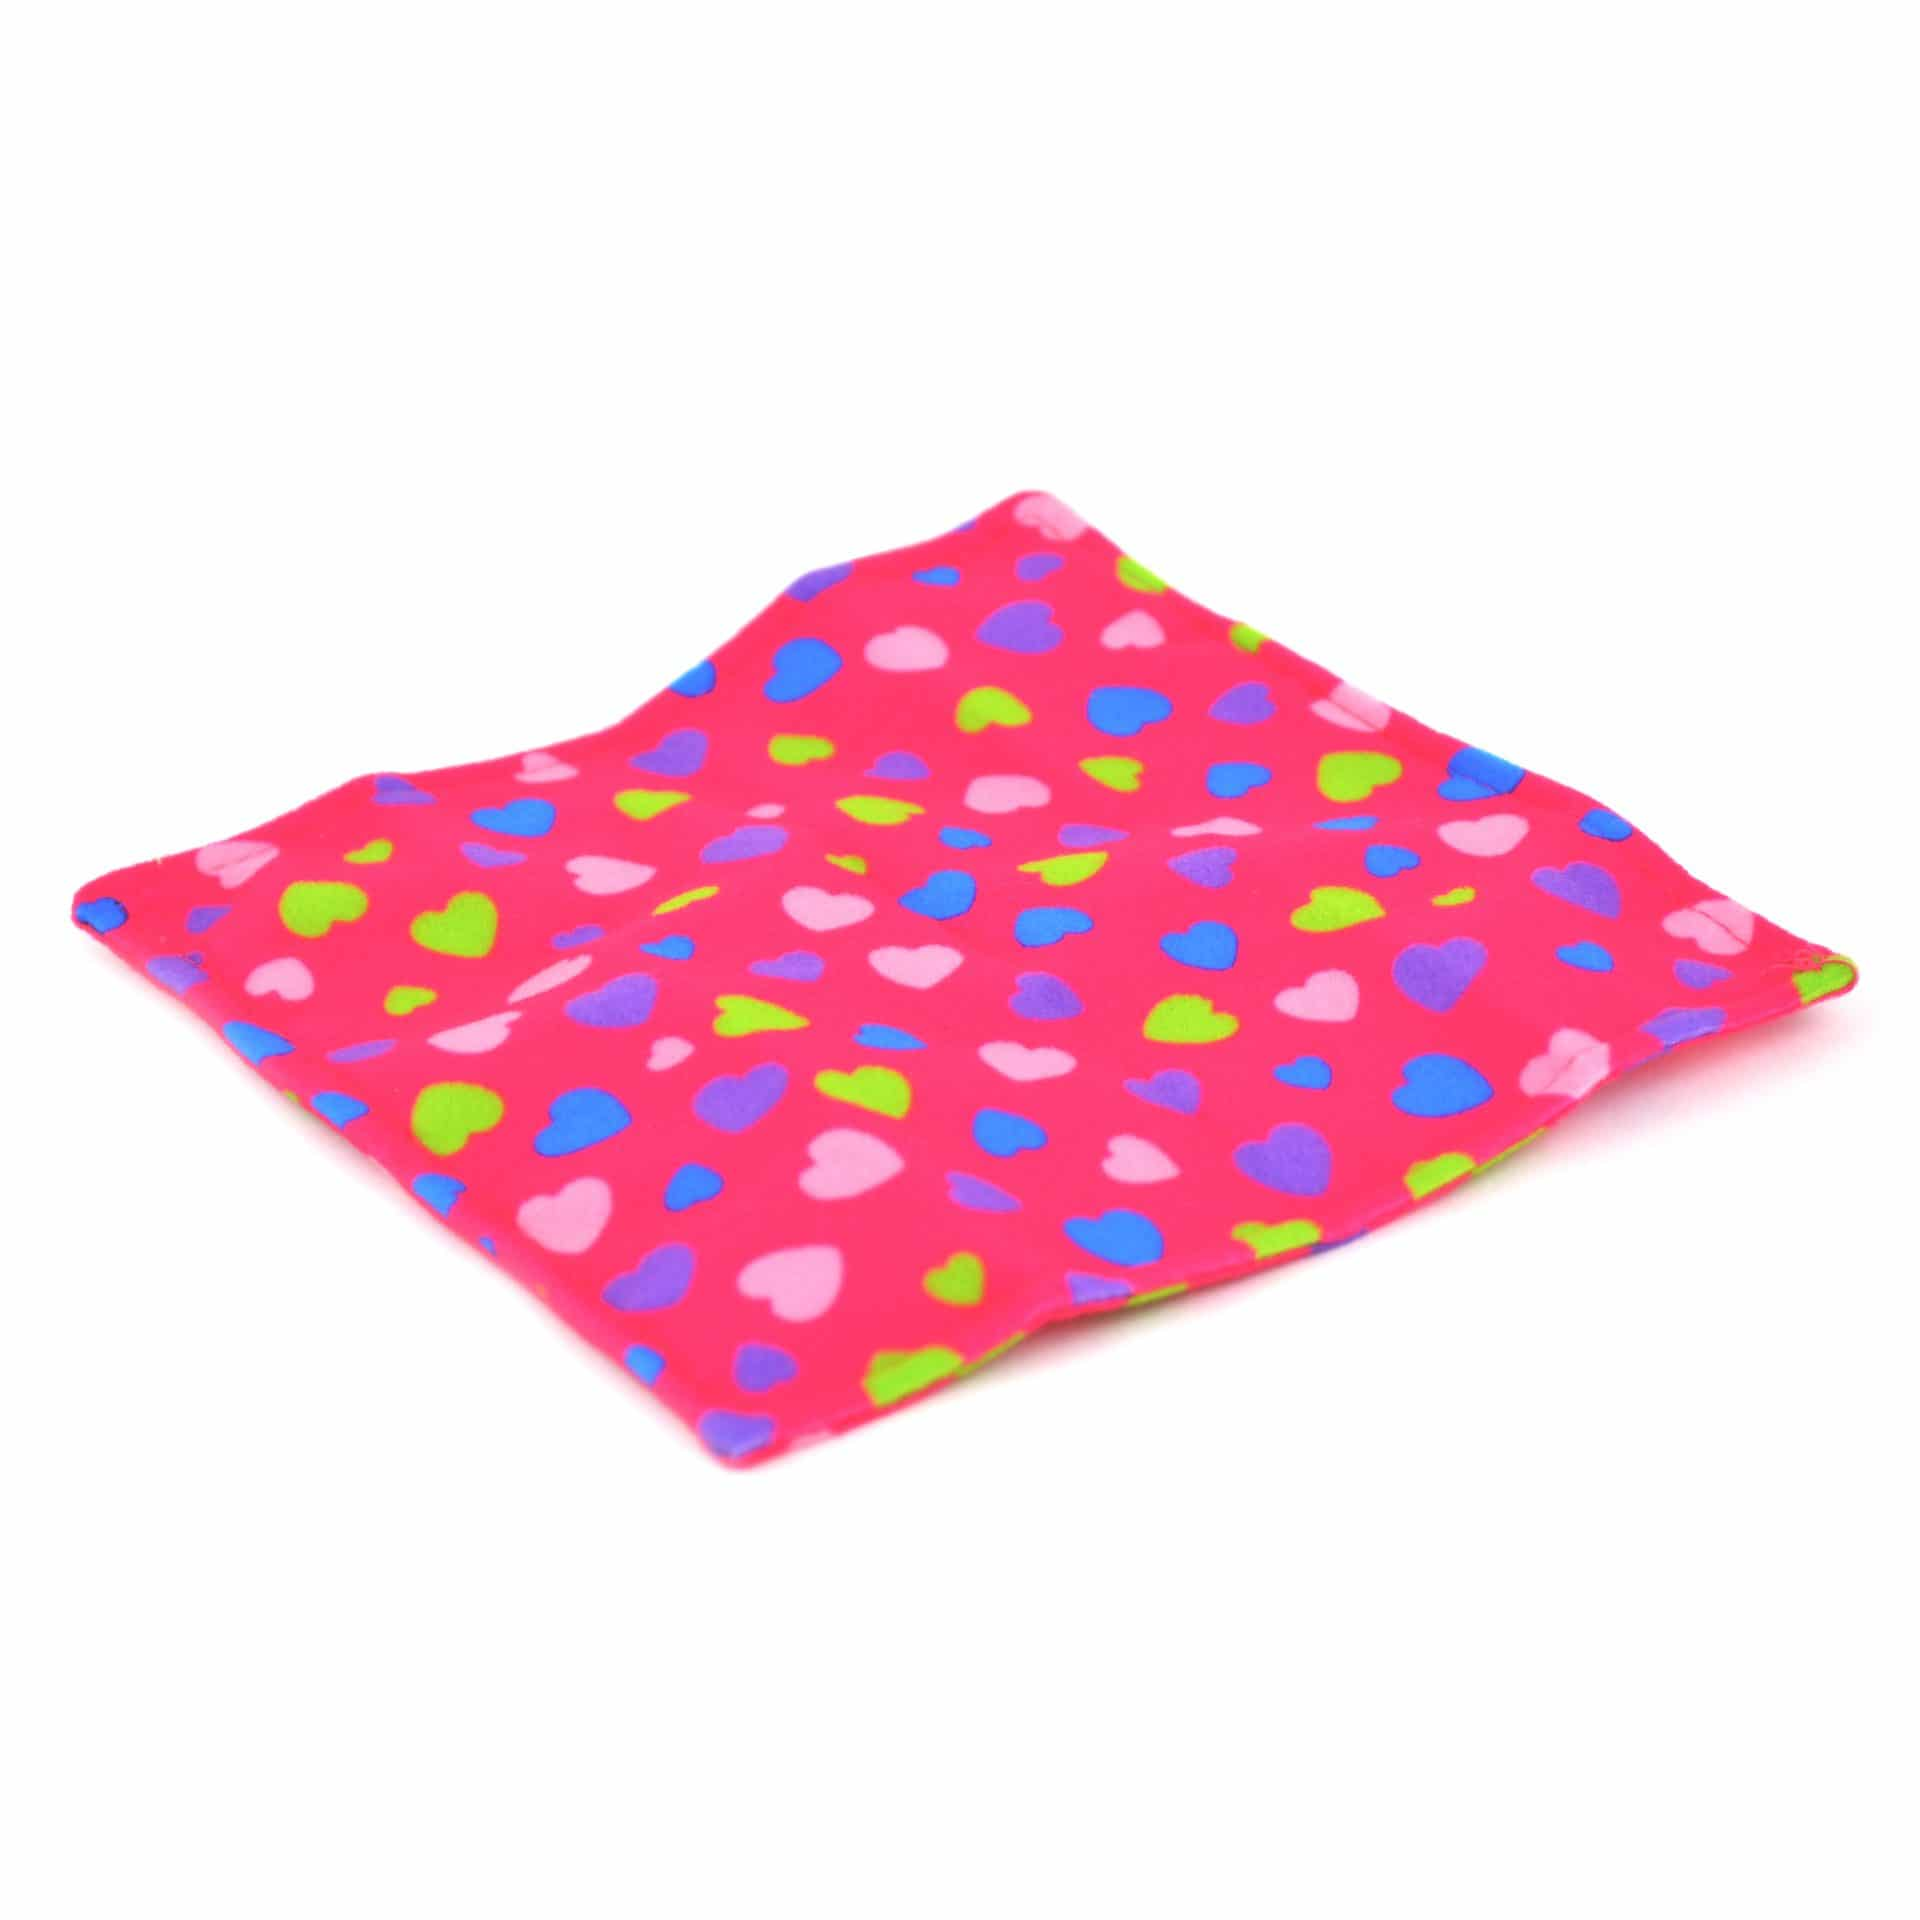 Flannel covered crinkly paper for babies